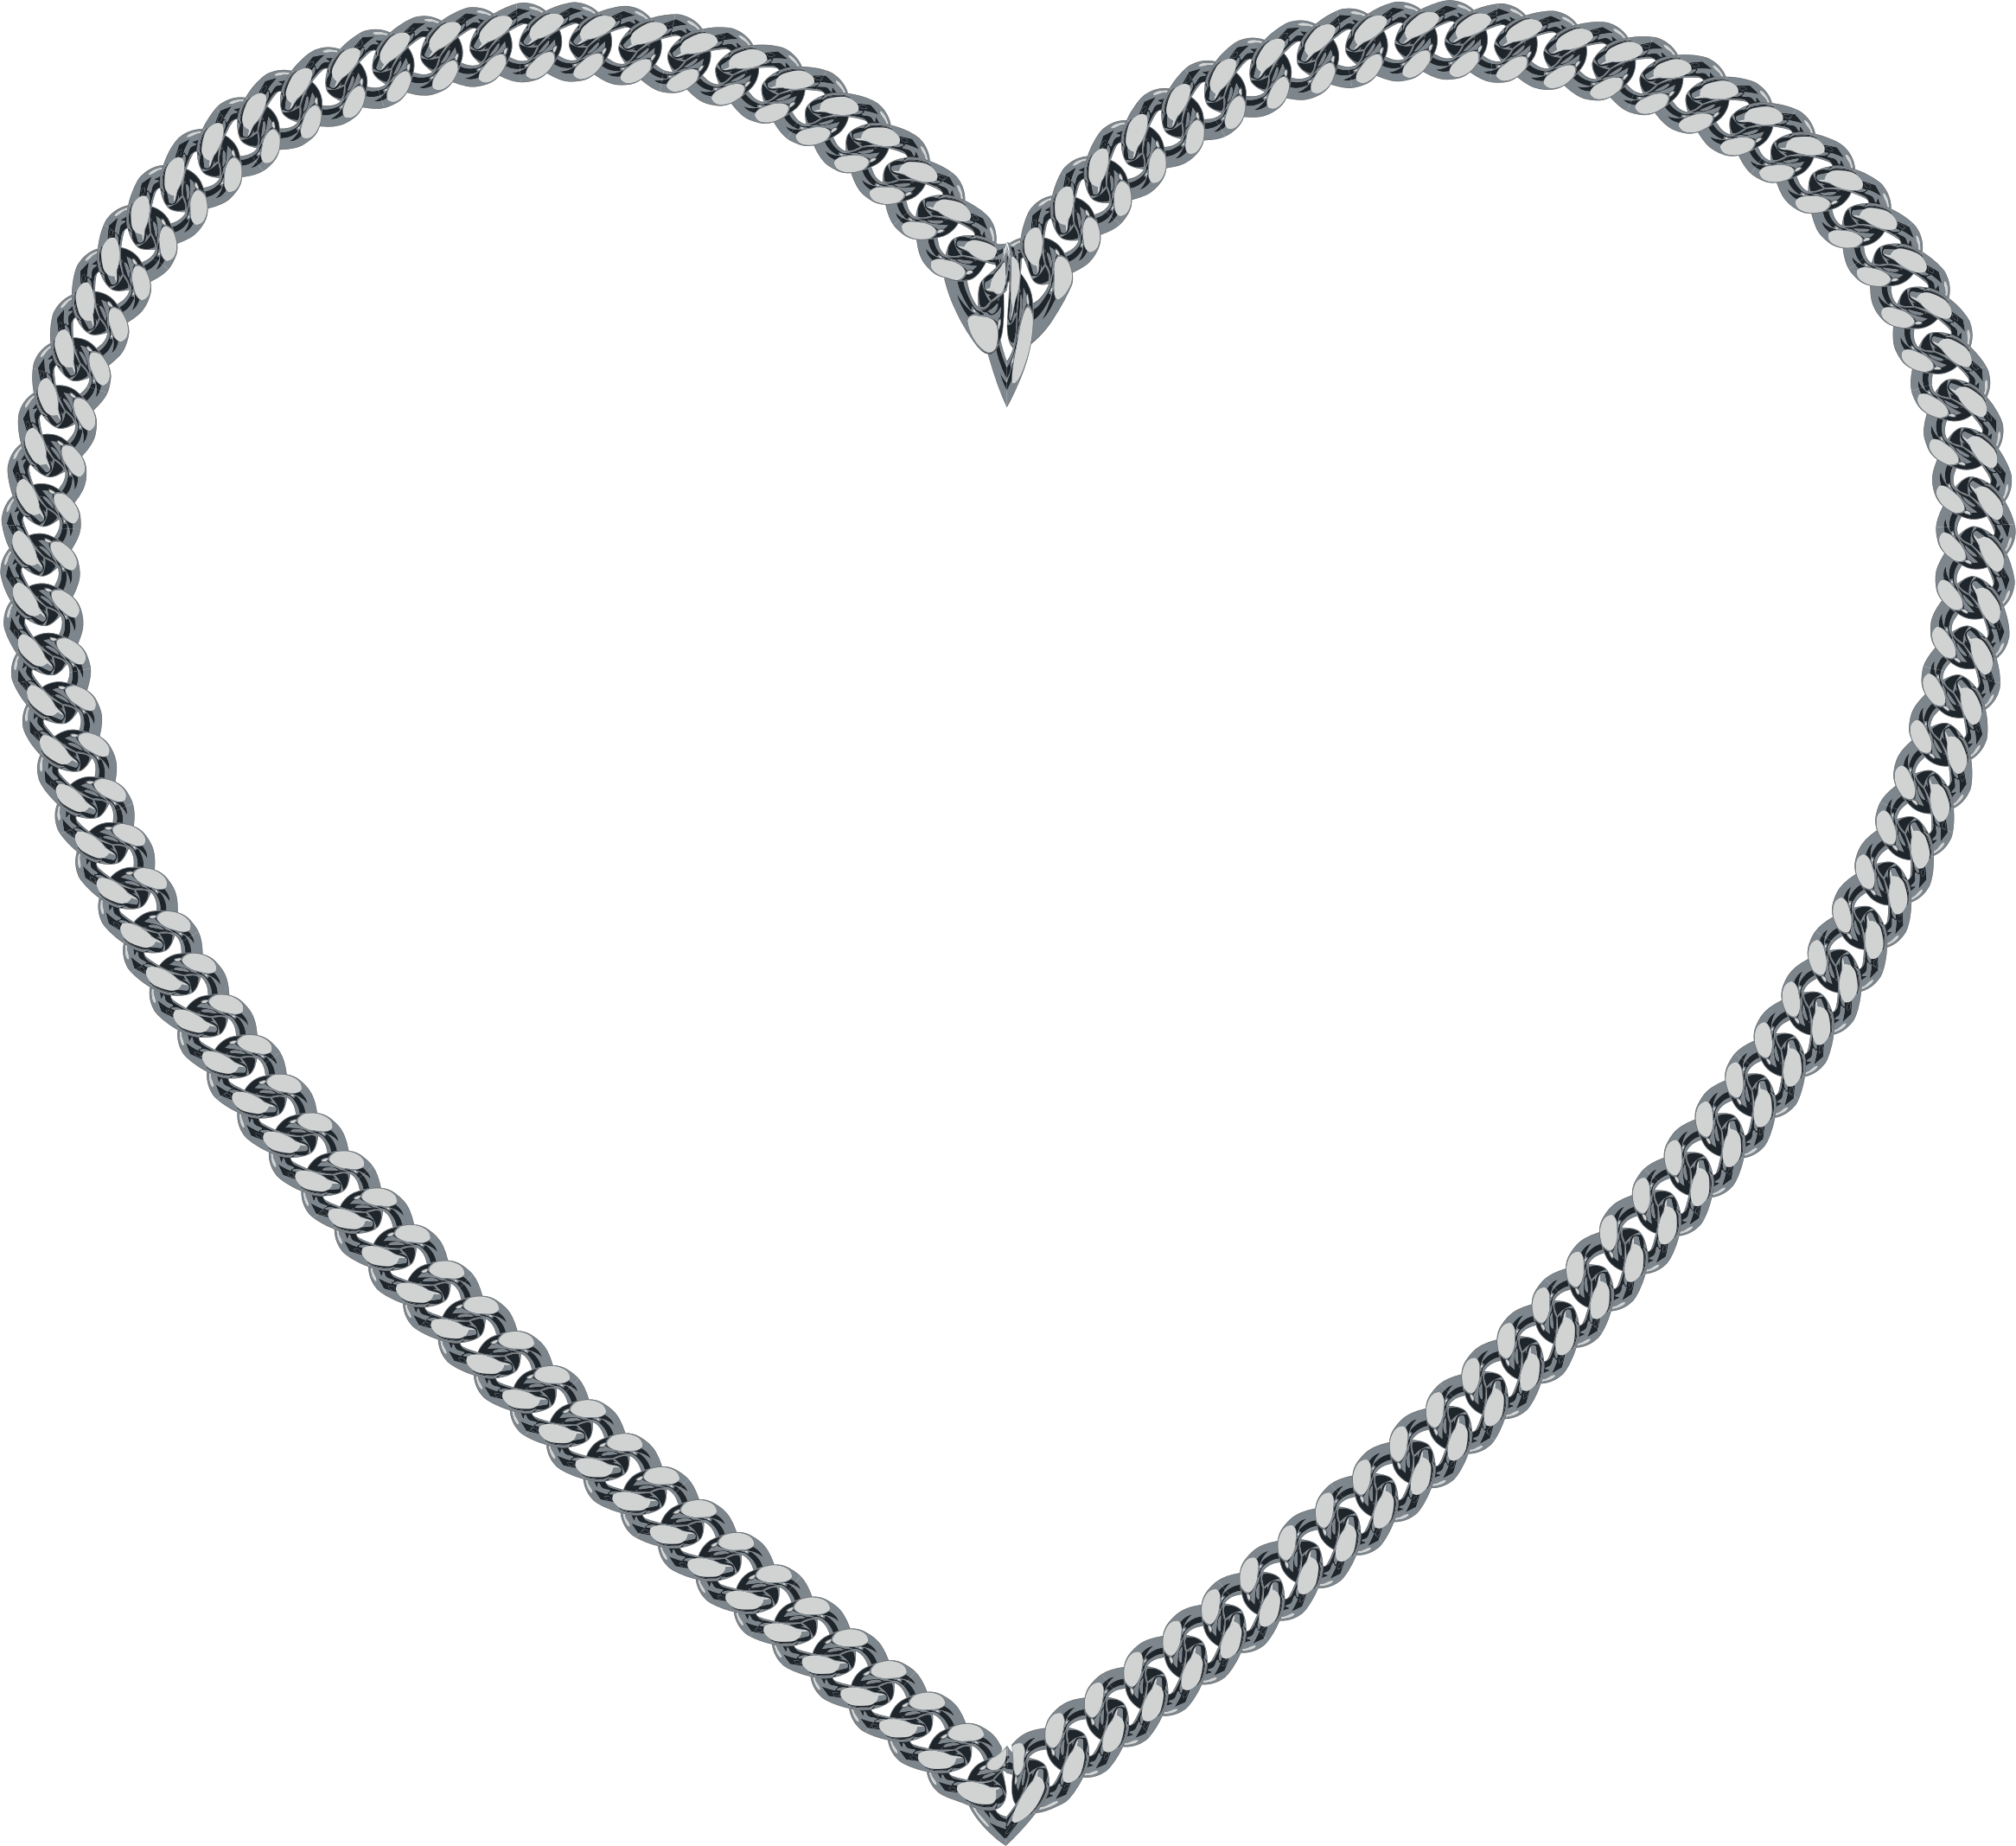 Spelling clipart chain. Heart big image png